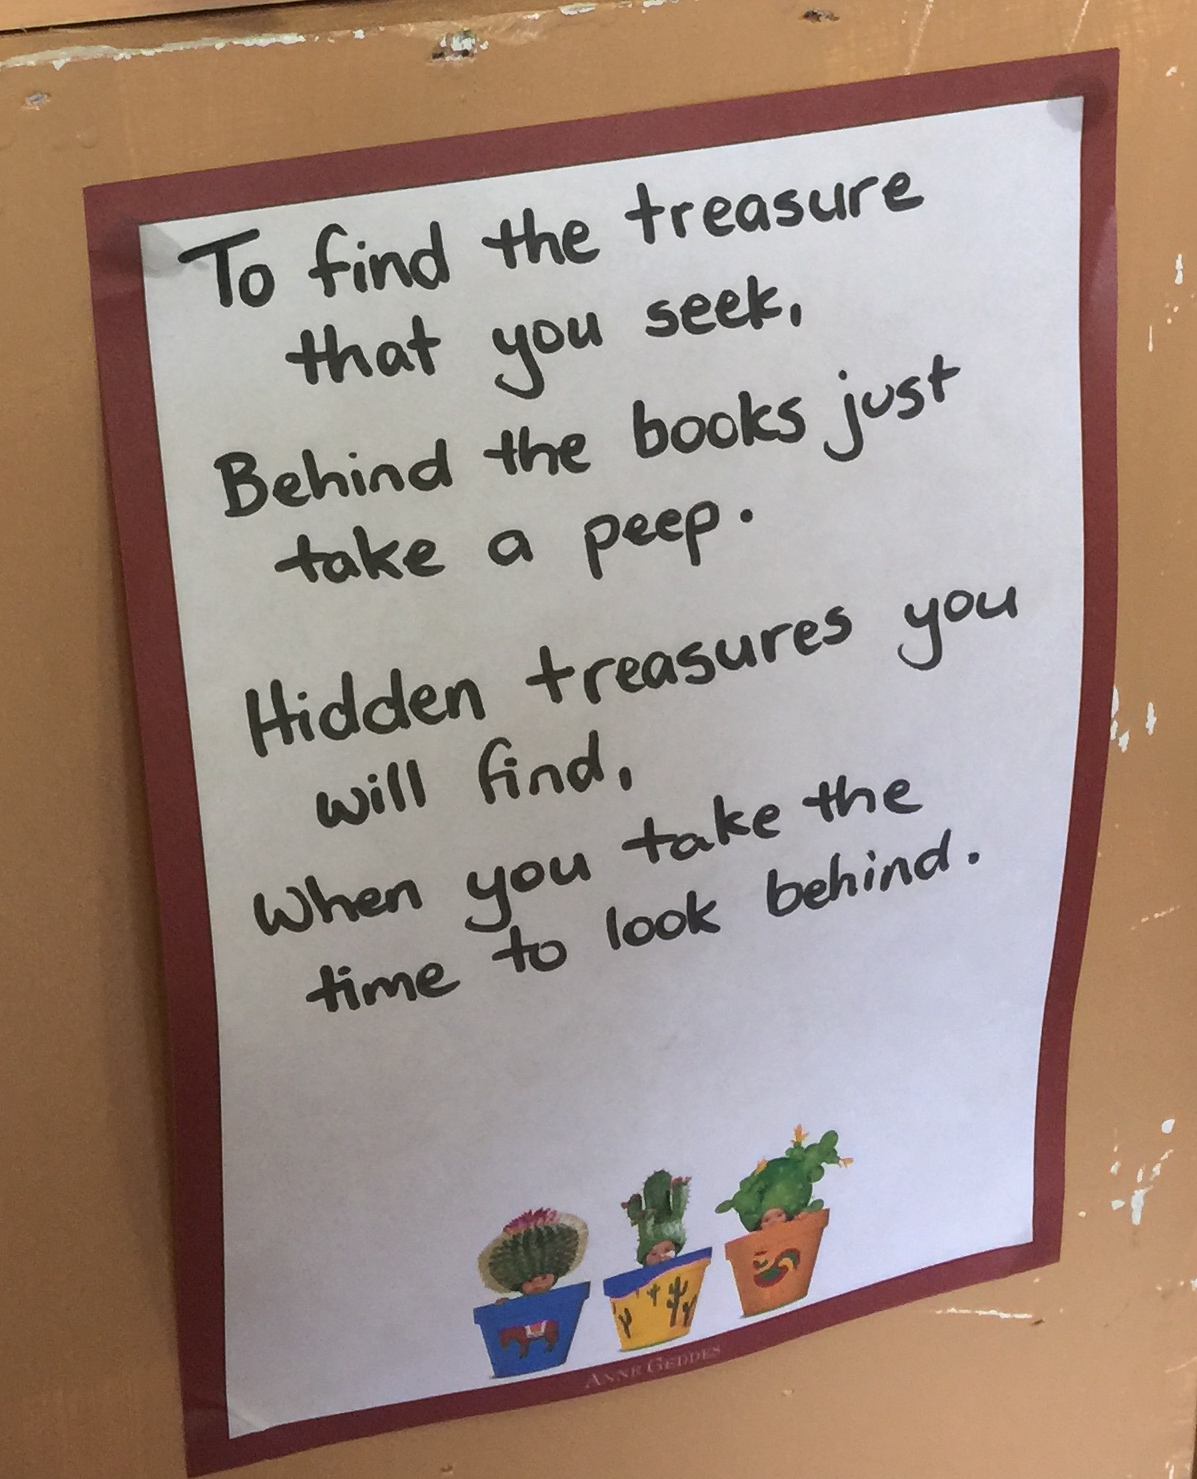 To find the treasure that you seek, Behind the books just take a peek. Hidden treasures you will find When you take the time to look behind.